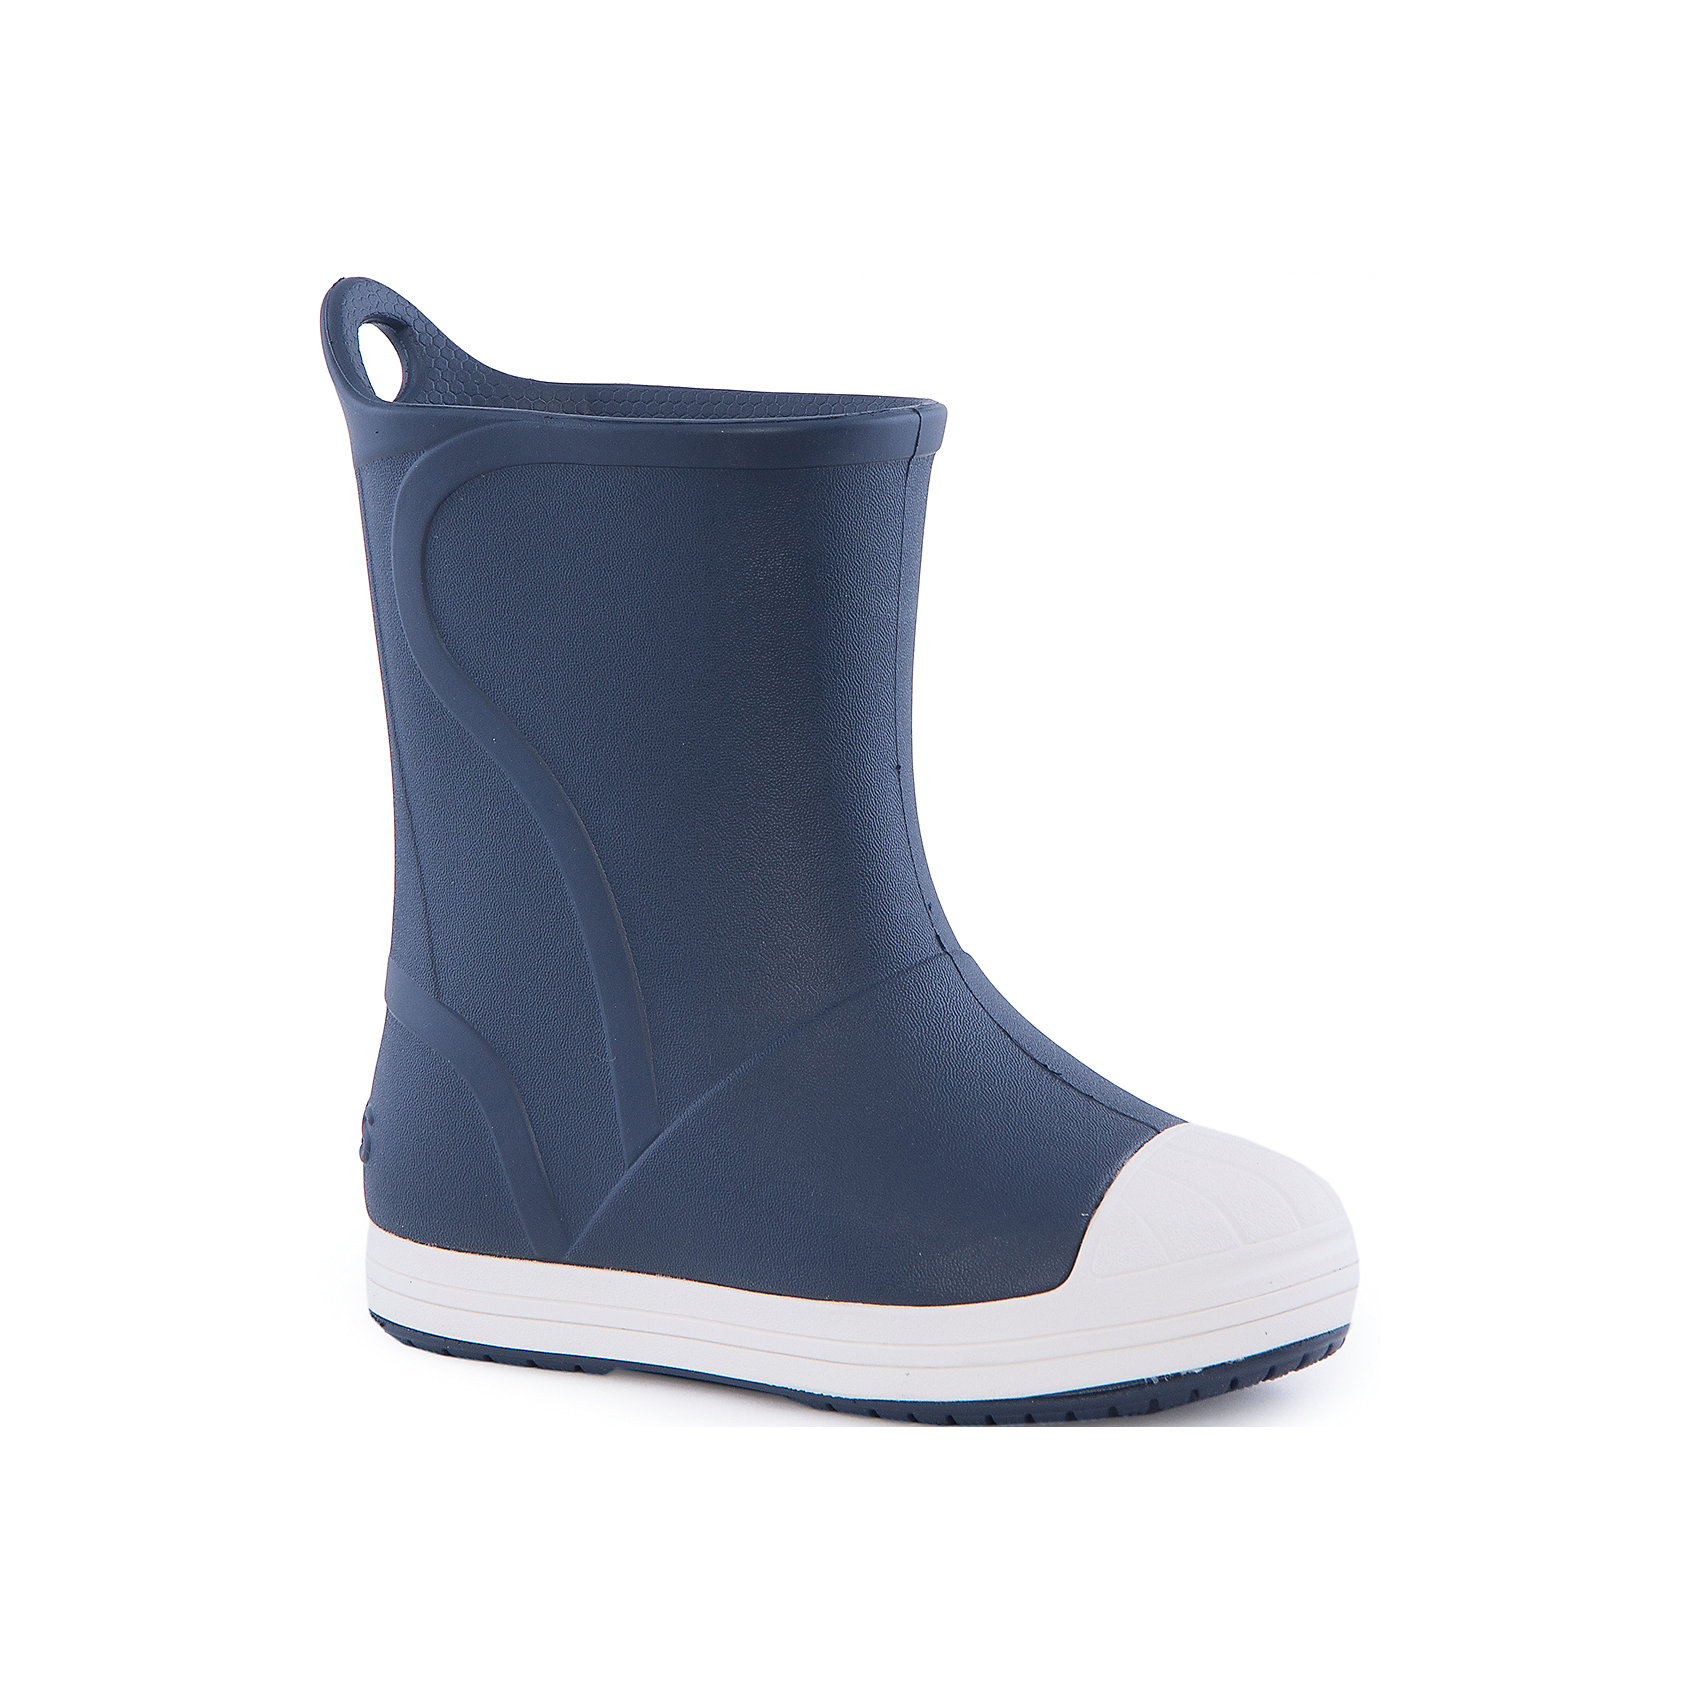 Резиновые сапоги Kids' Crocs Bump It Rain Boot Crocs